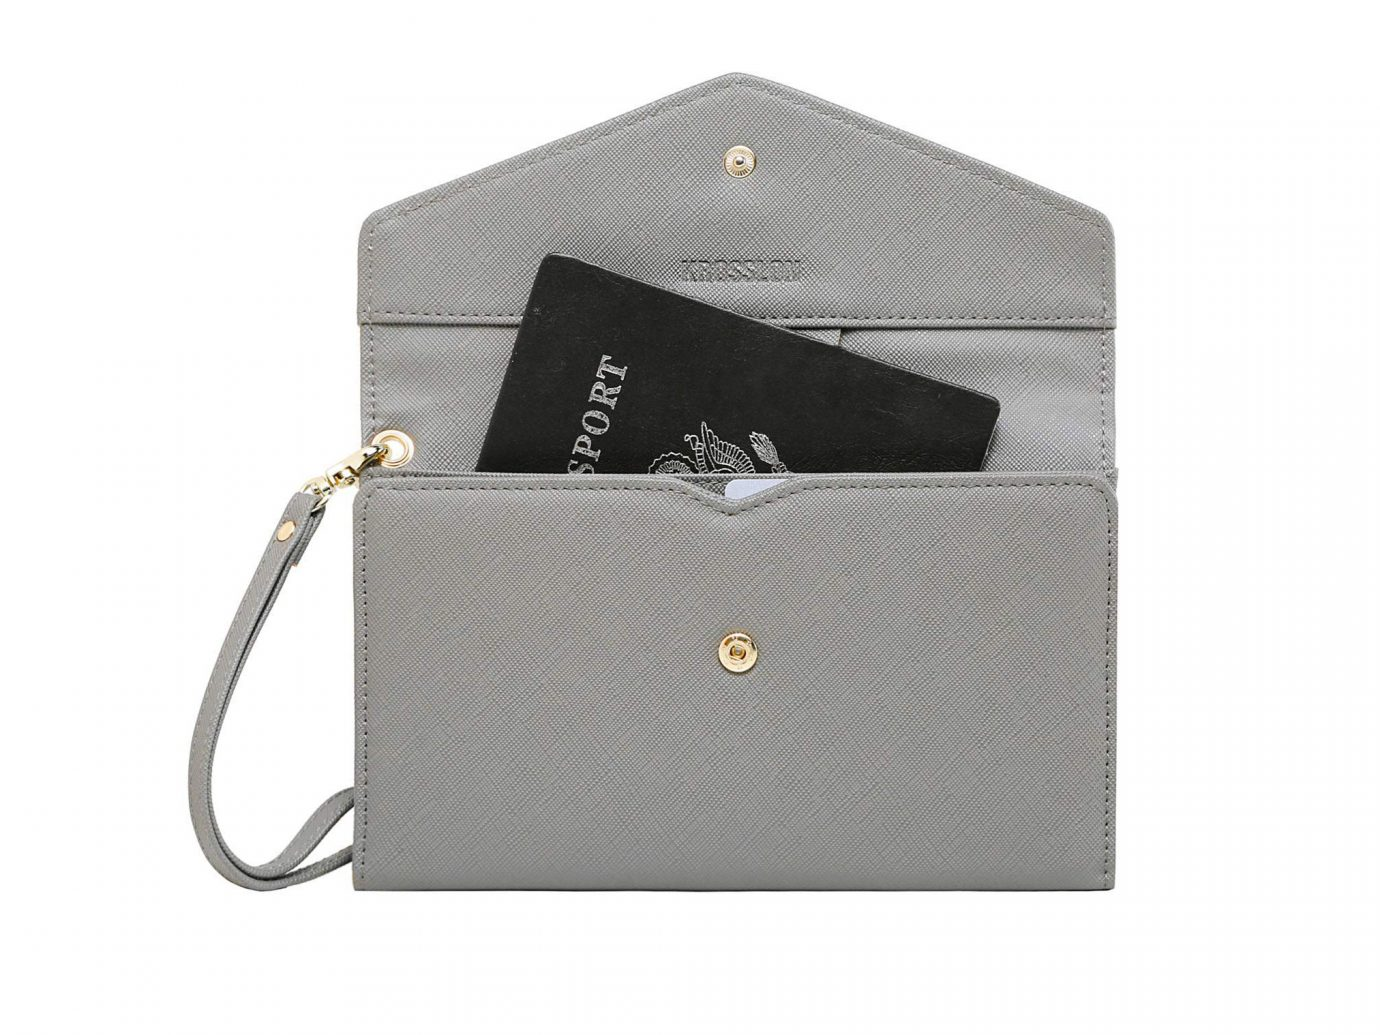 Krosslon Travel Passport Wallet